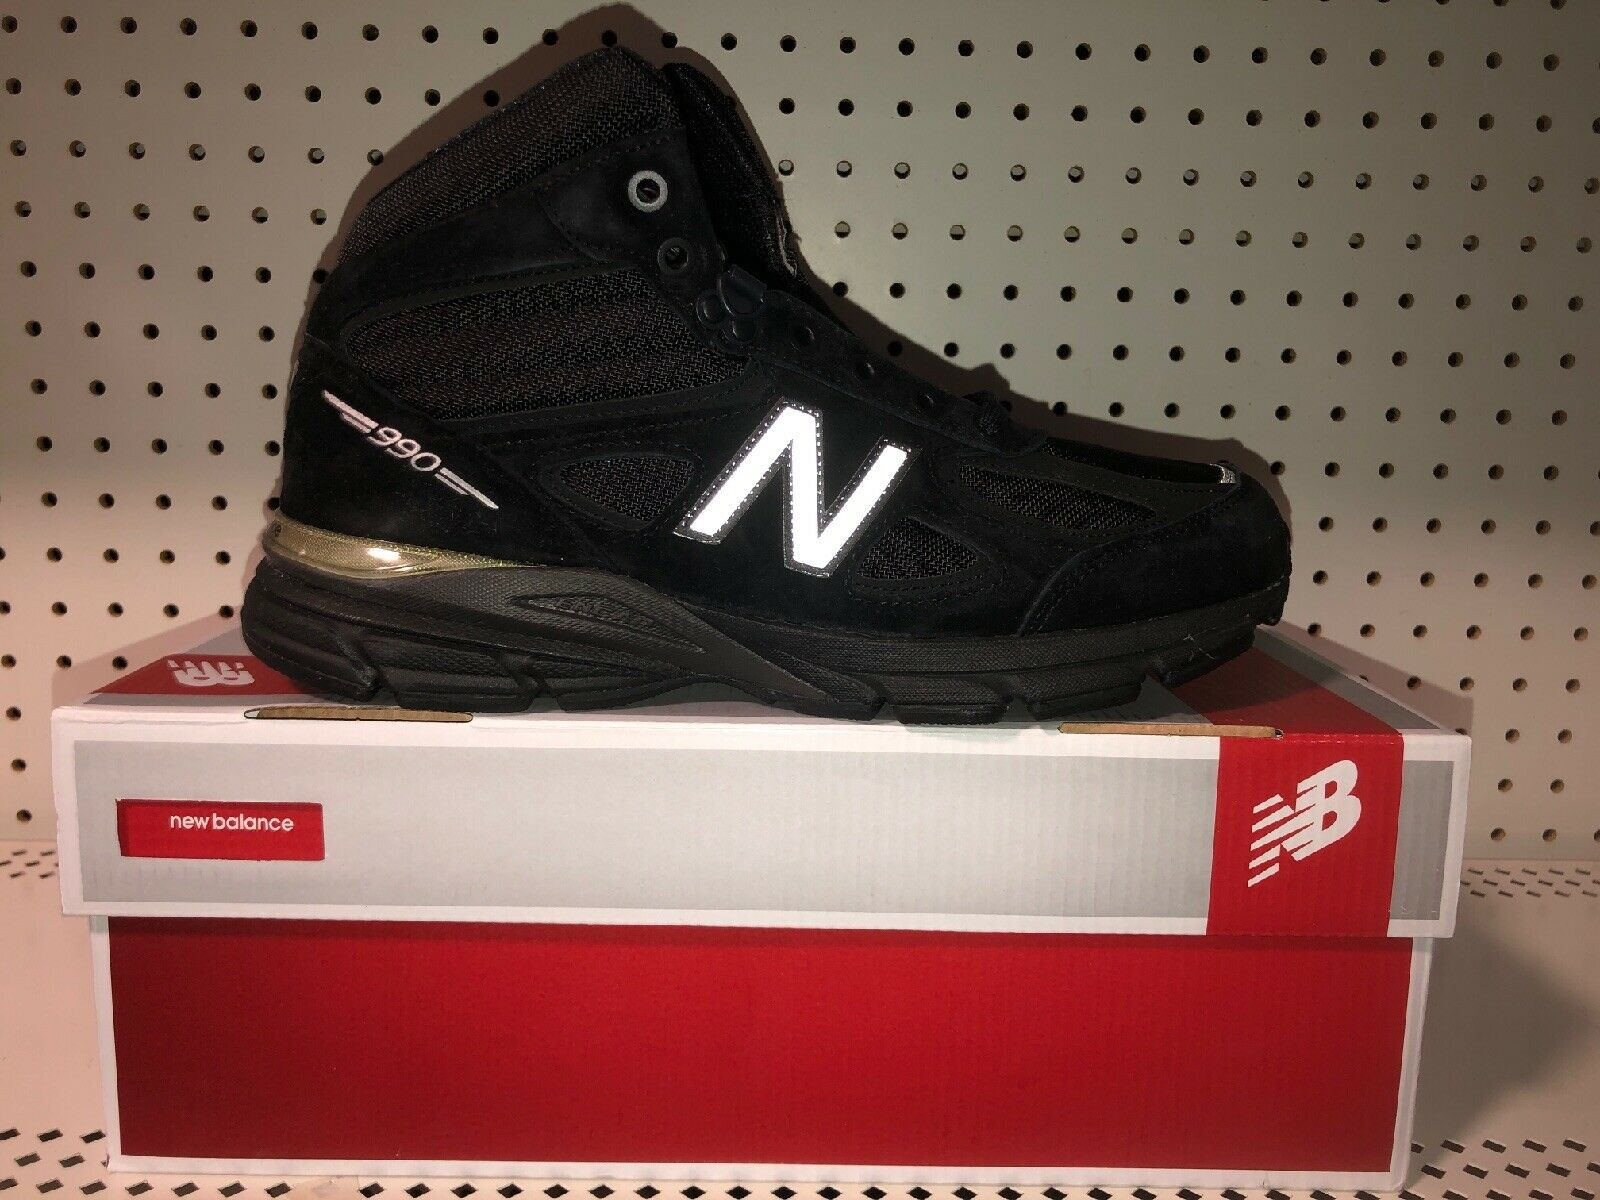 New Balance 990 Mid Boot Black